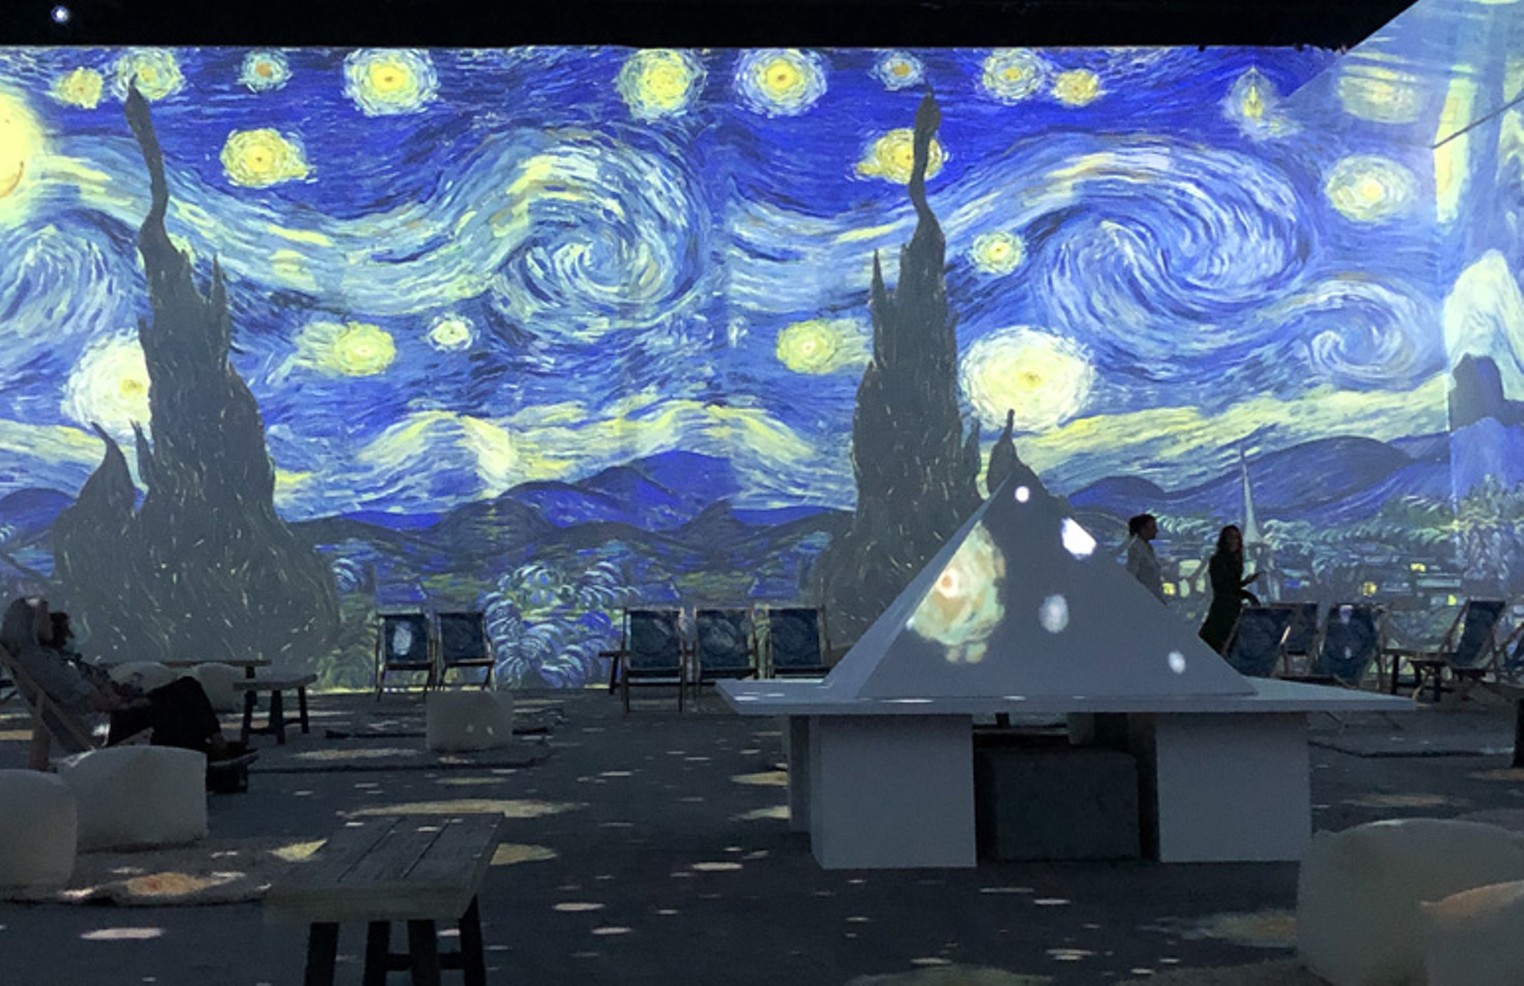 Mind-Bending Van Gogh: The Immersive Experience Adapts the Troubled Artist for the Digital Age